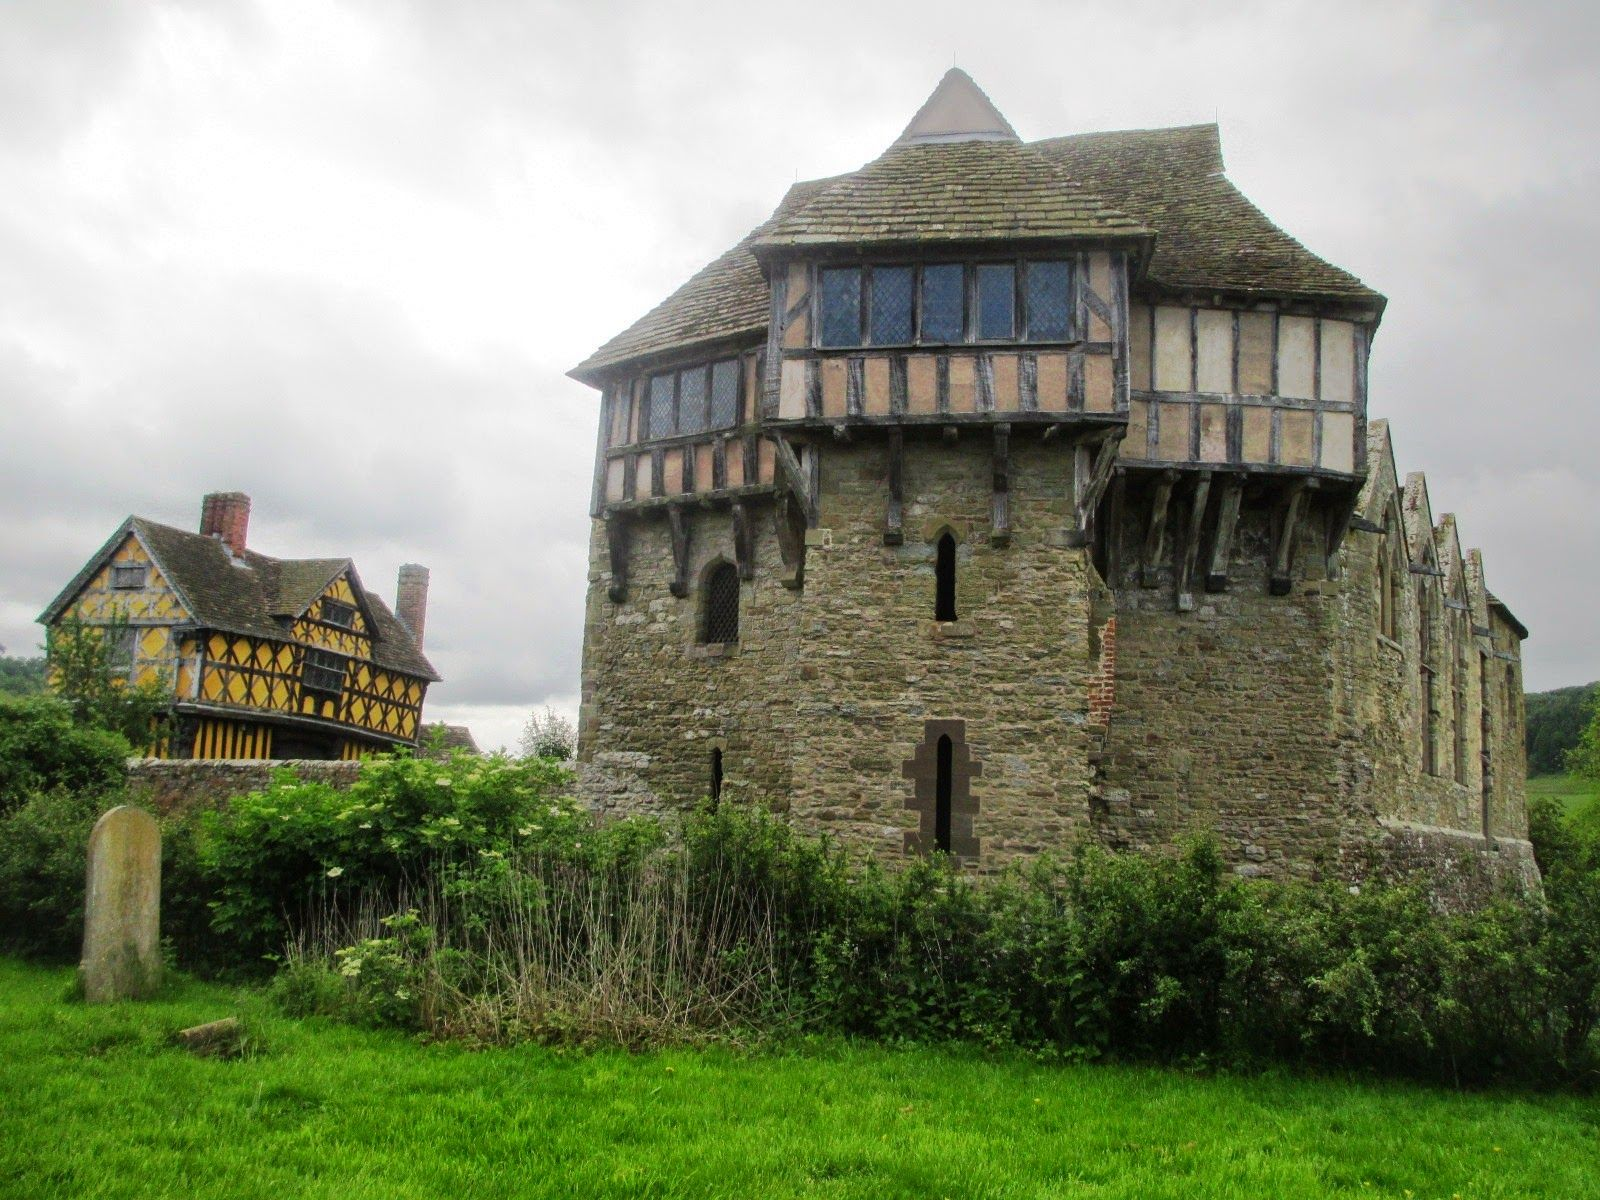 Stokesay Castle and its gatehouse, Shropshire